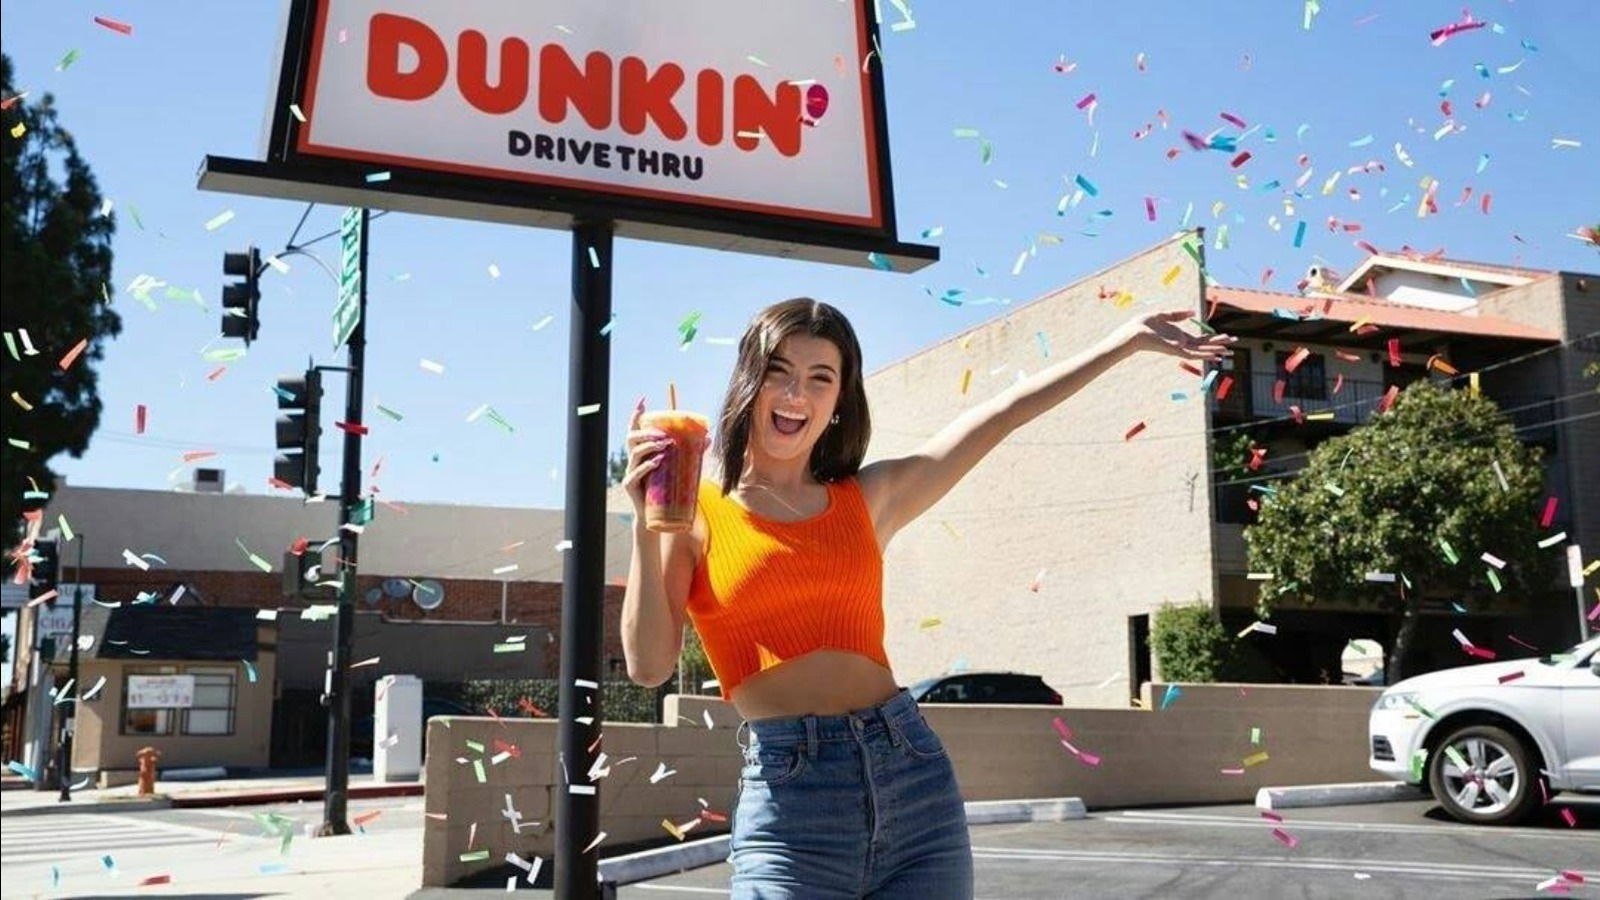 What makes Dunkin's Charli D'Amelio drink so concerning